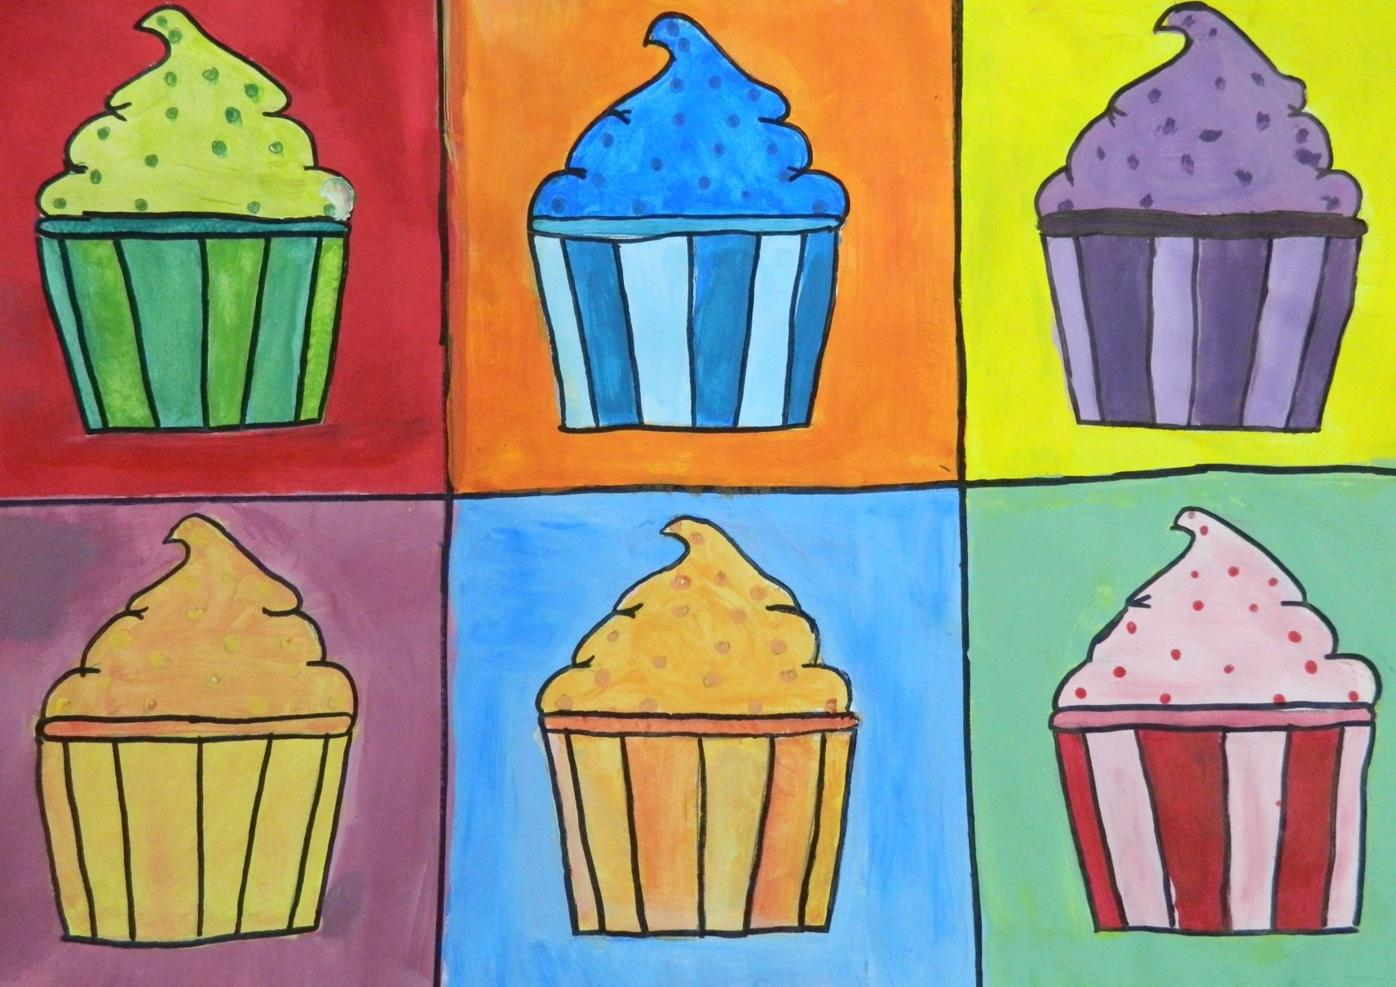 Wayne Trace to hold Third Annual District Art Show